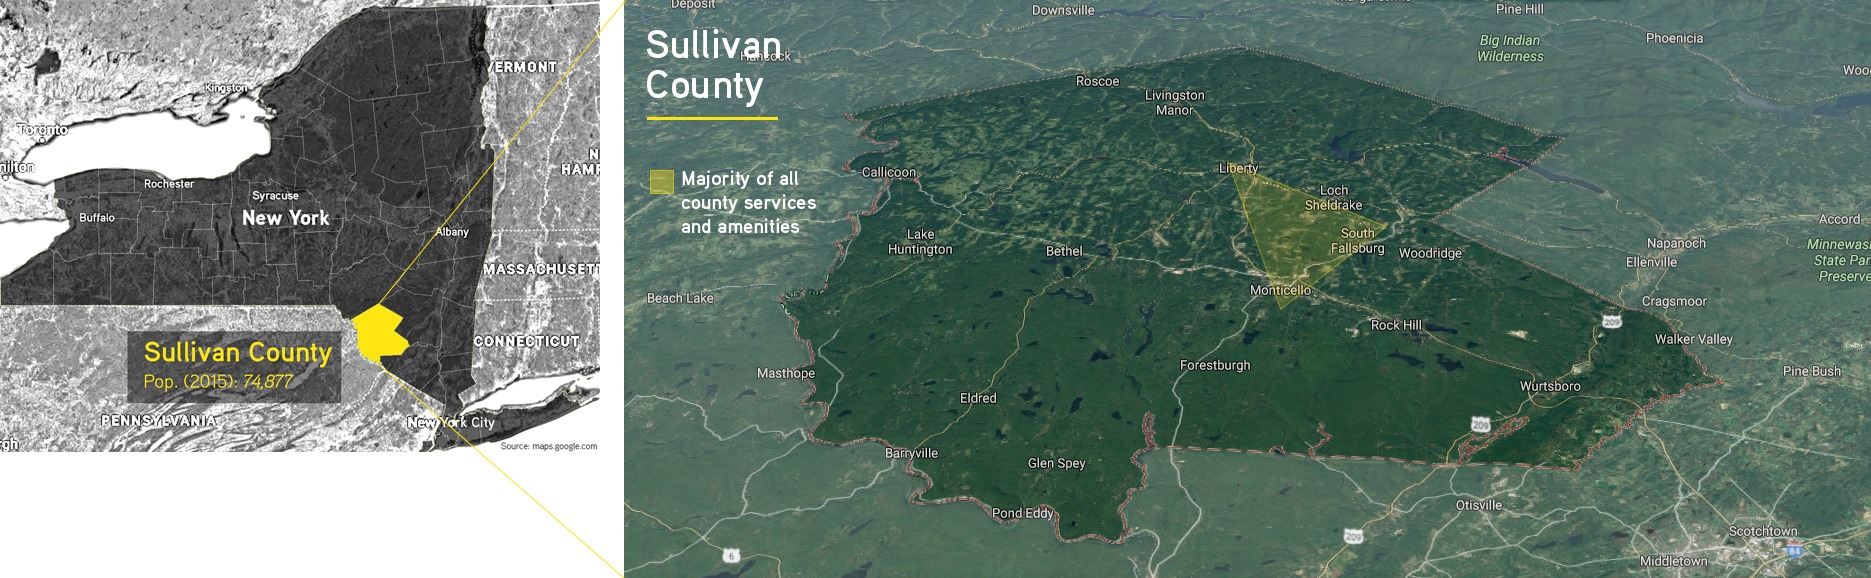 sullivan county services map